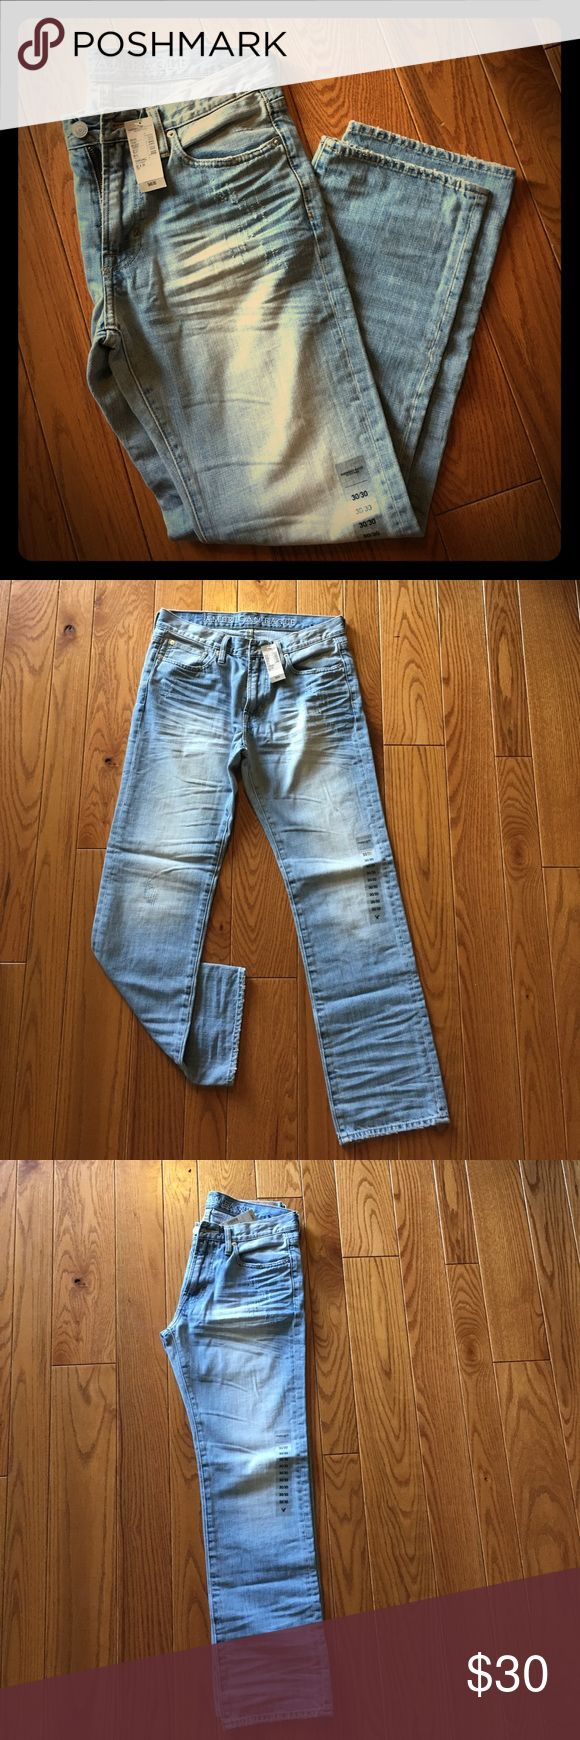 Men's American Eagle Jeans NWT American Eagle Men's 30x30 Original Straight legged jeans. 30 x 30 Color 919, Style 2737 American Eagle Outfitters Jeans Straight